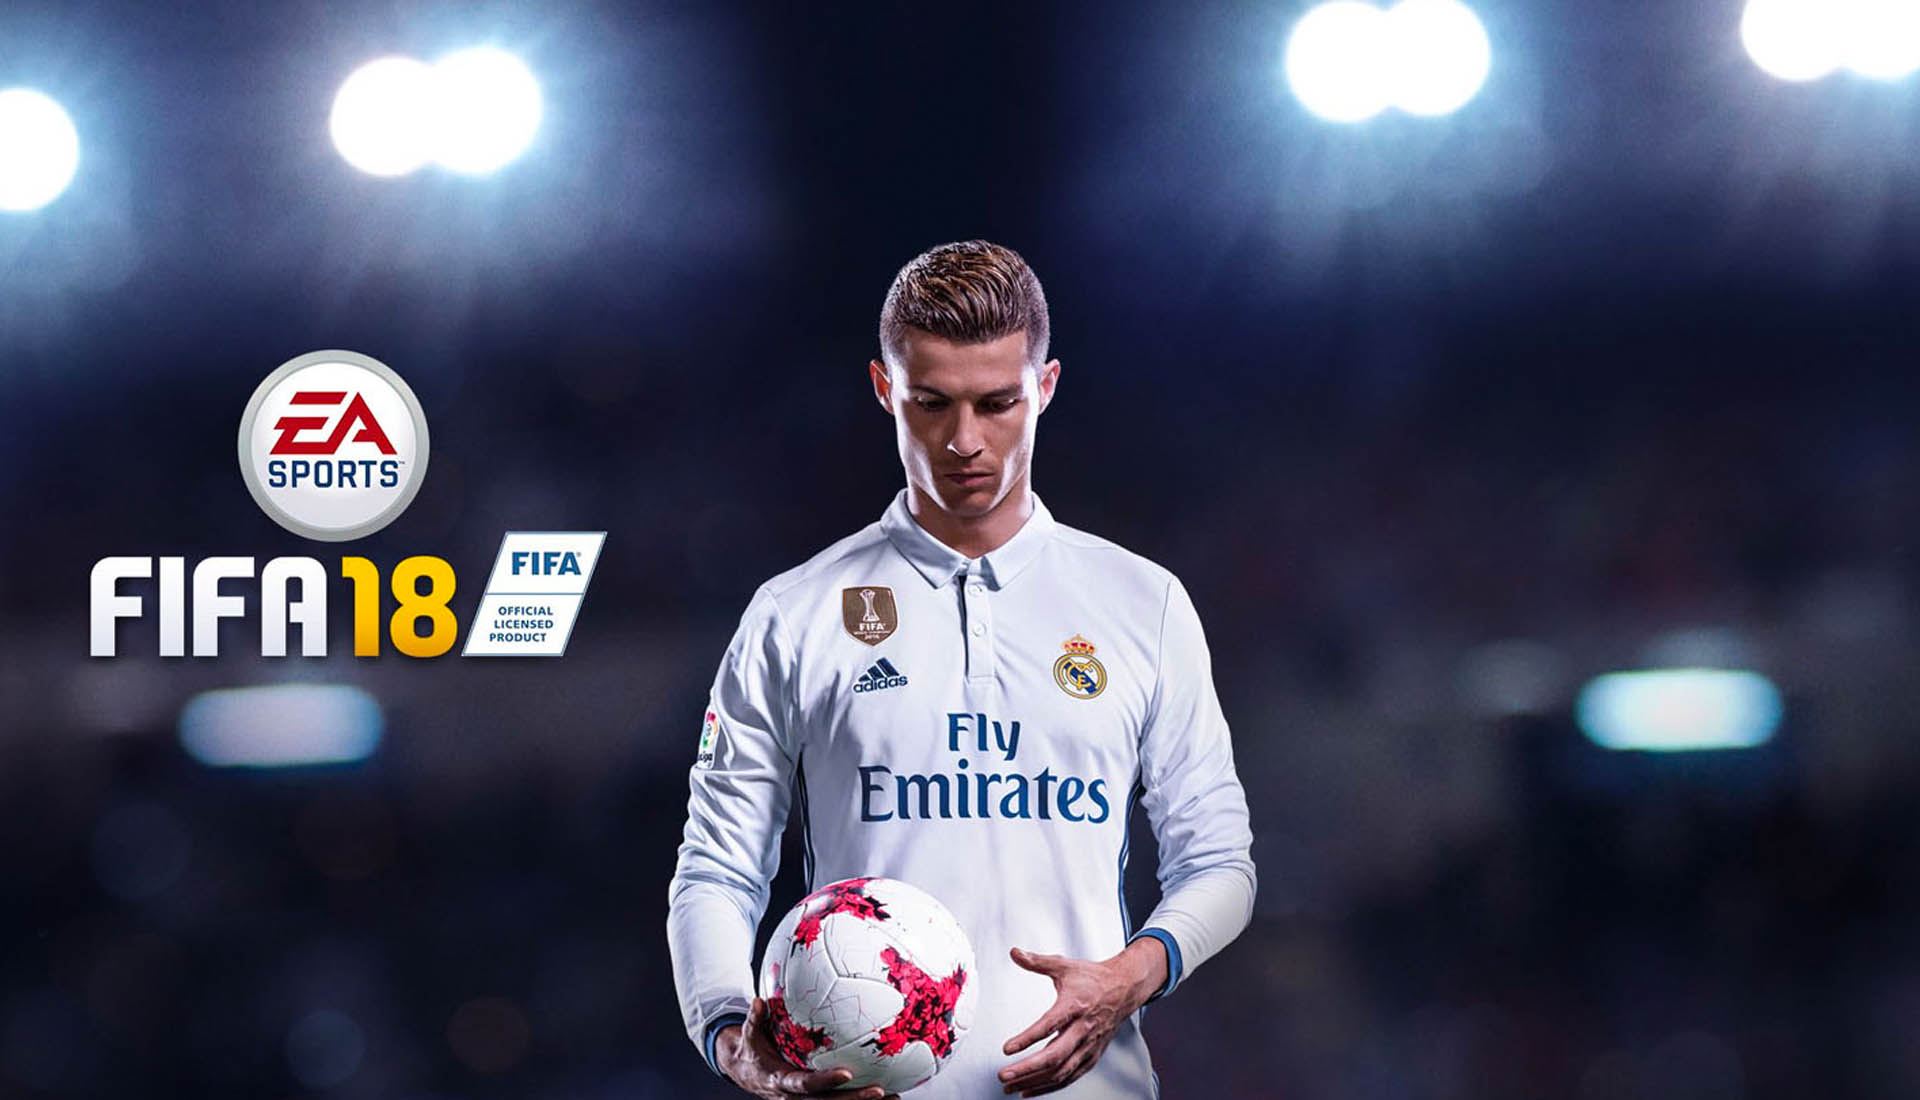 Image result for fifa 18 soccerbible_0001_Layer 7.jpg